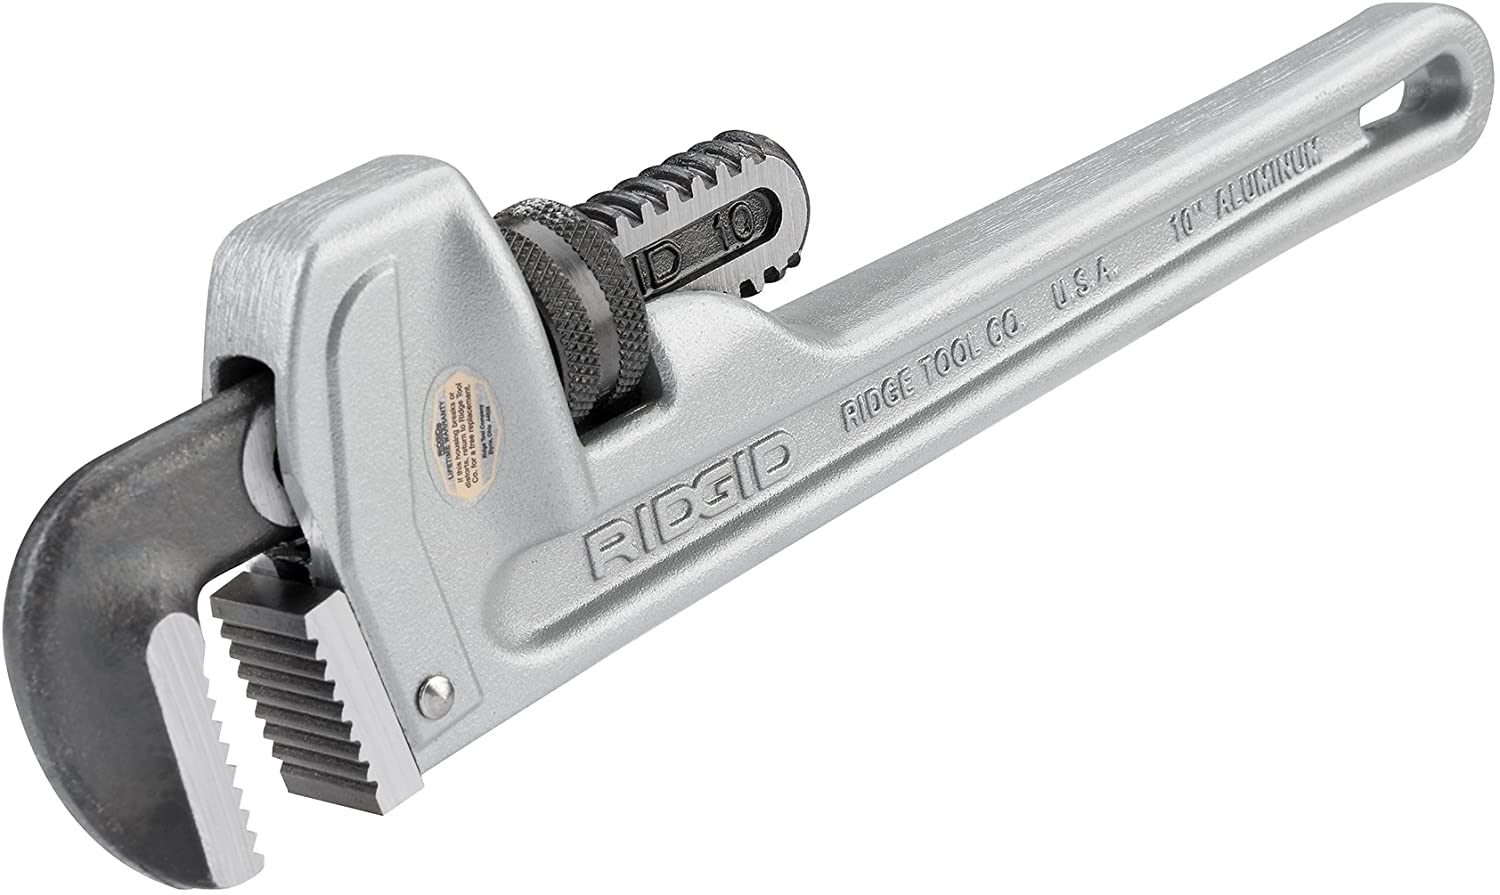 RIDGID 31090 Model 810 New color Aluminum Animer and price revision Pl Straight 10-inch Wrench Pipe